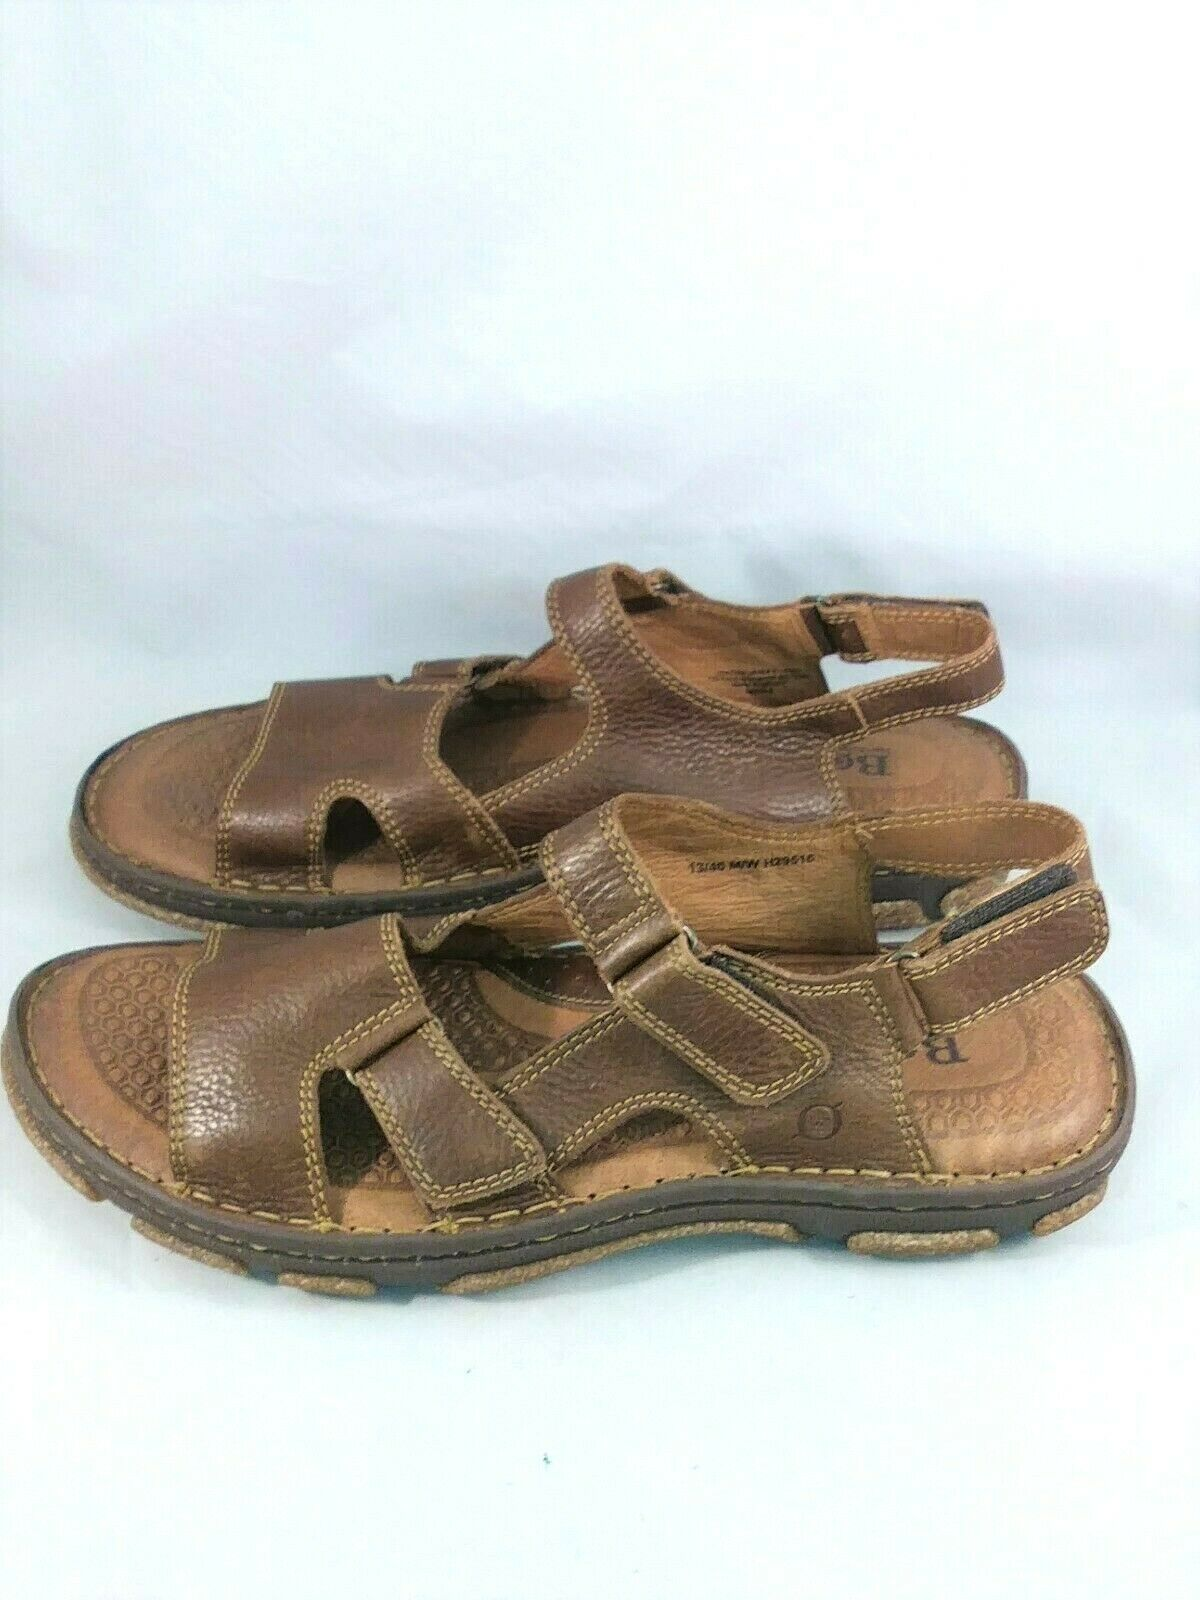 BORN Segar H29516 Walnut Brown Leather Sandals Men's Size 13 46 M W